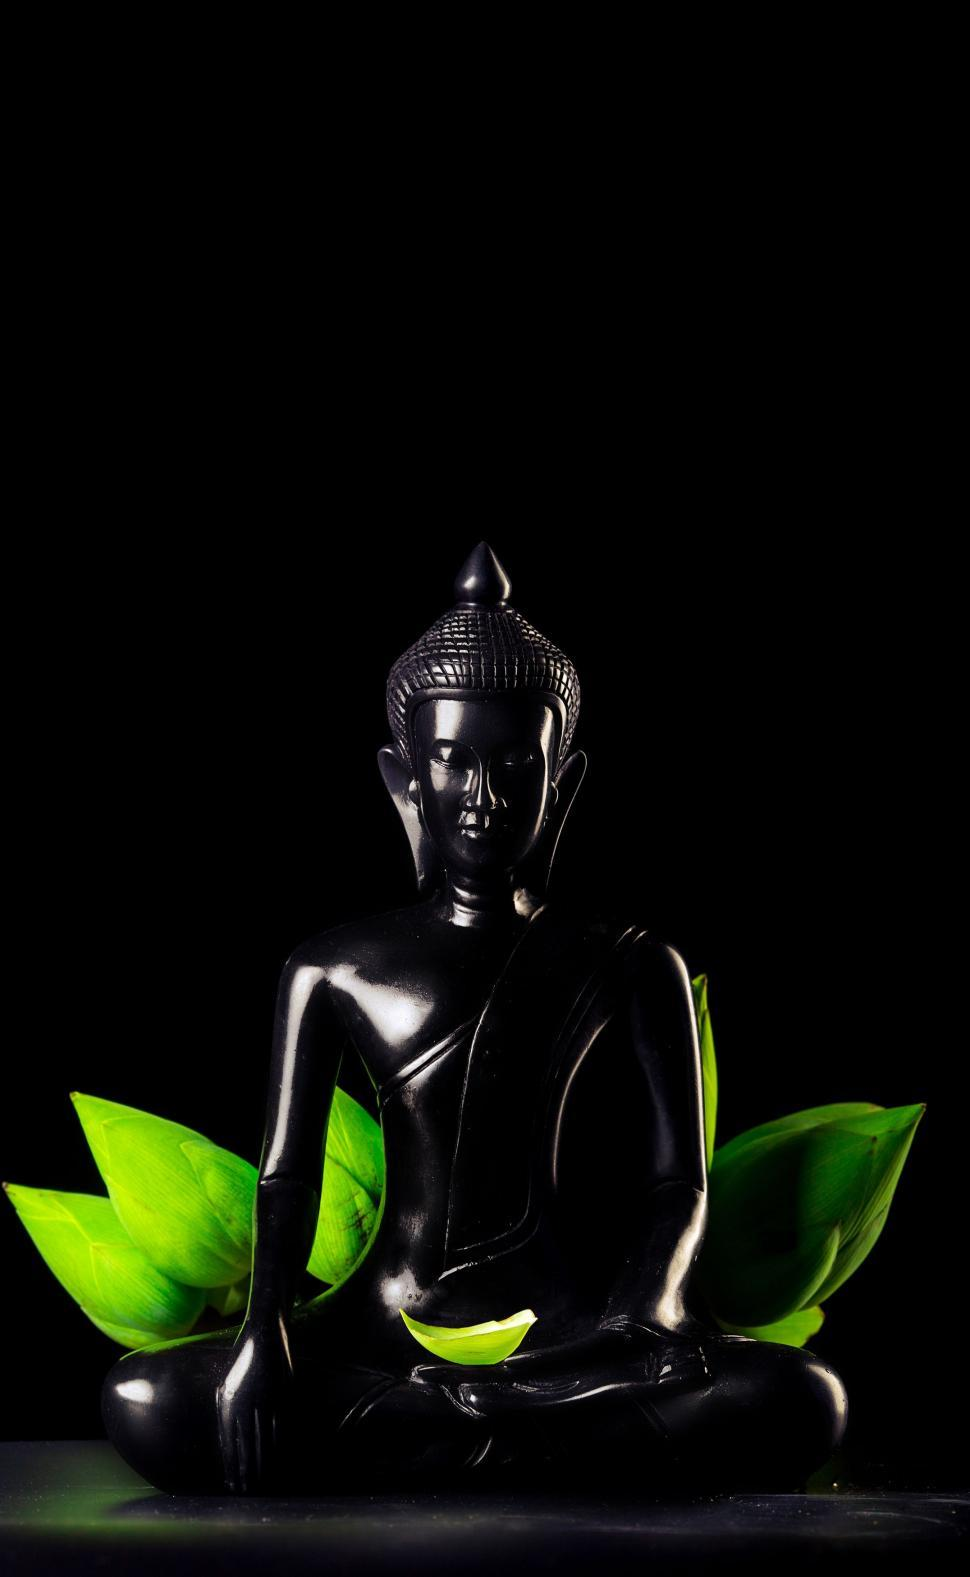 Download Free Stock Photo of Black Buddha